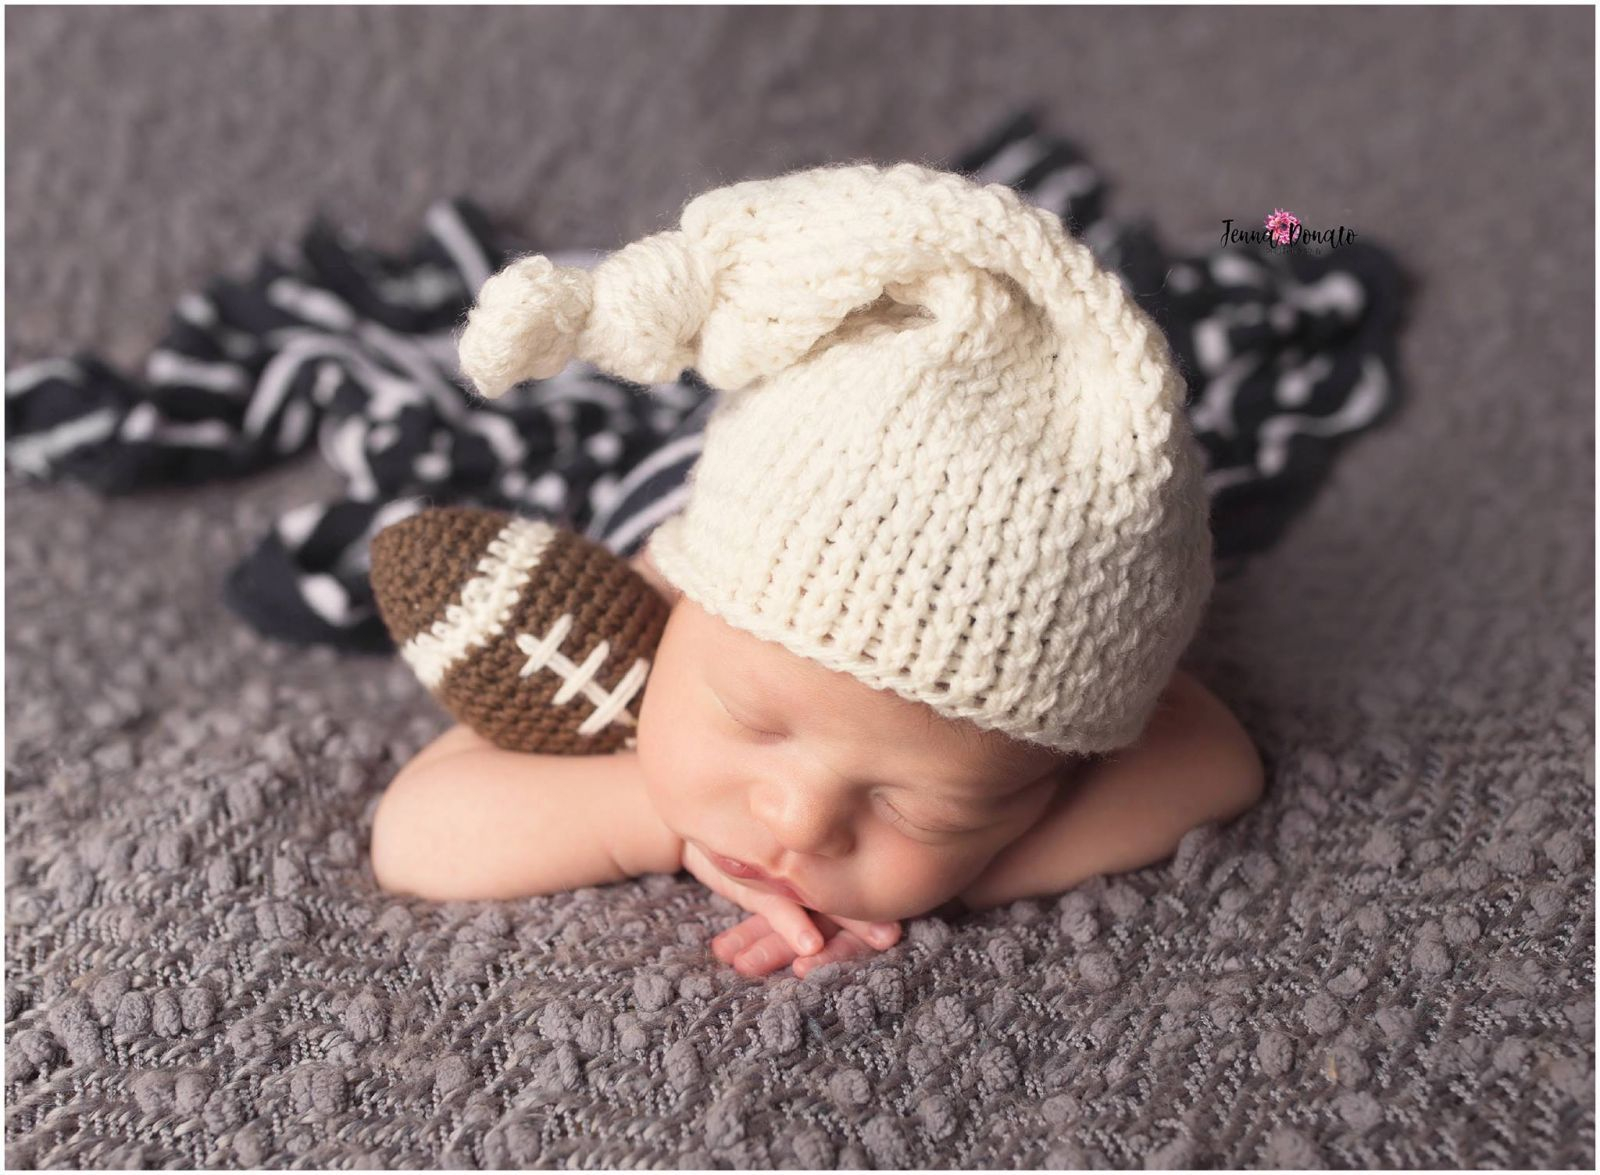 New Born Knitting Patterns Newborn Prop Hat Knitting Pattern Free Knitting Patterns Handy